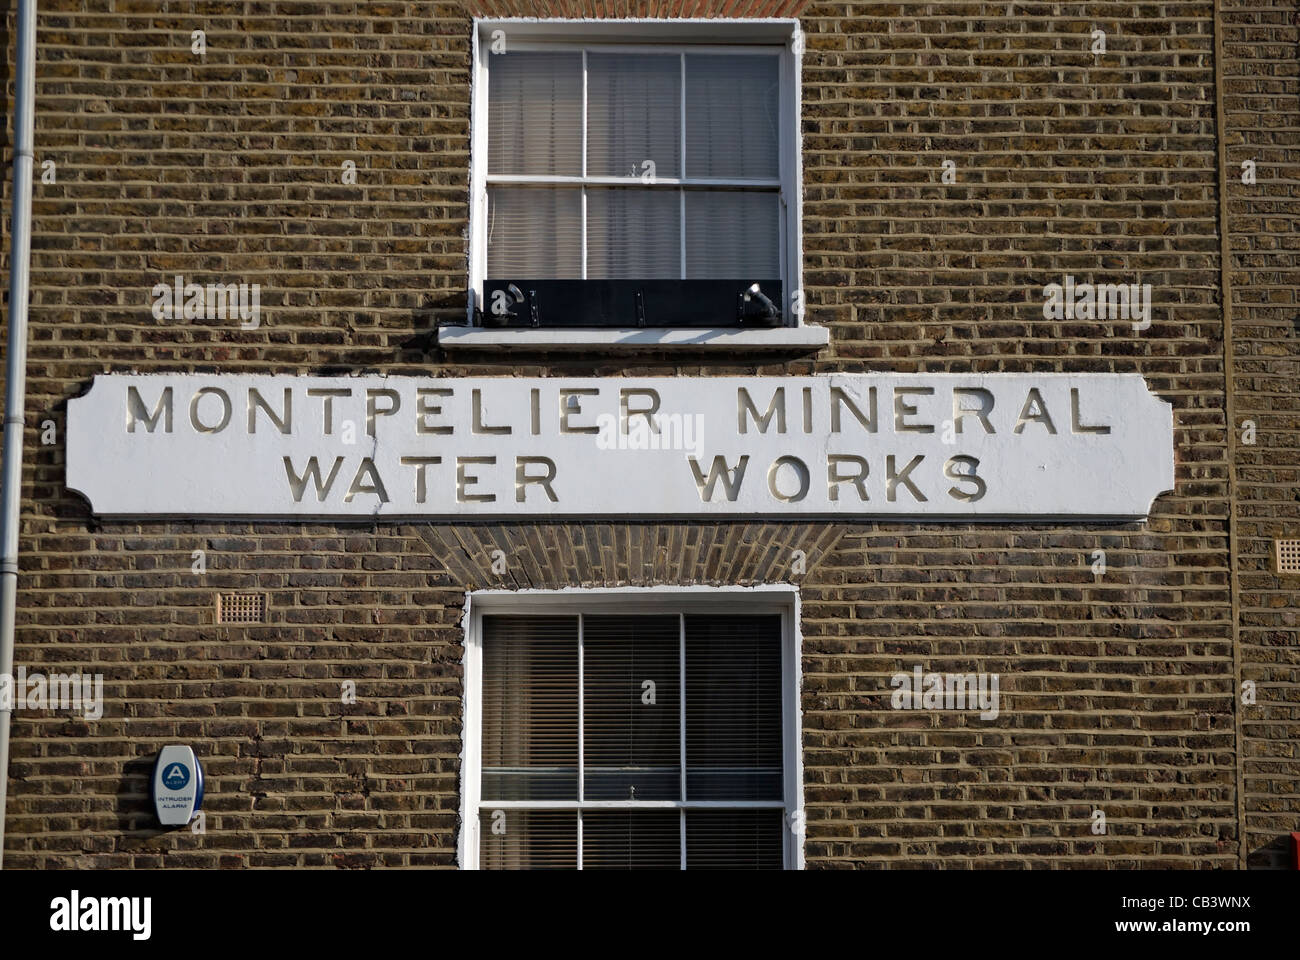 name sign for the former montpelier mineral water works, knightsbridge, london, england - Stock Image